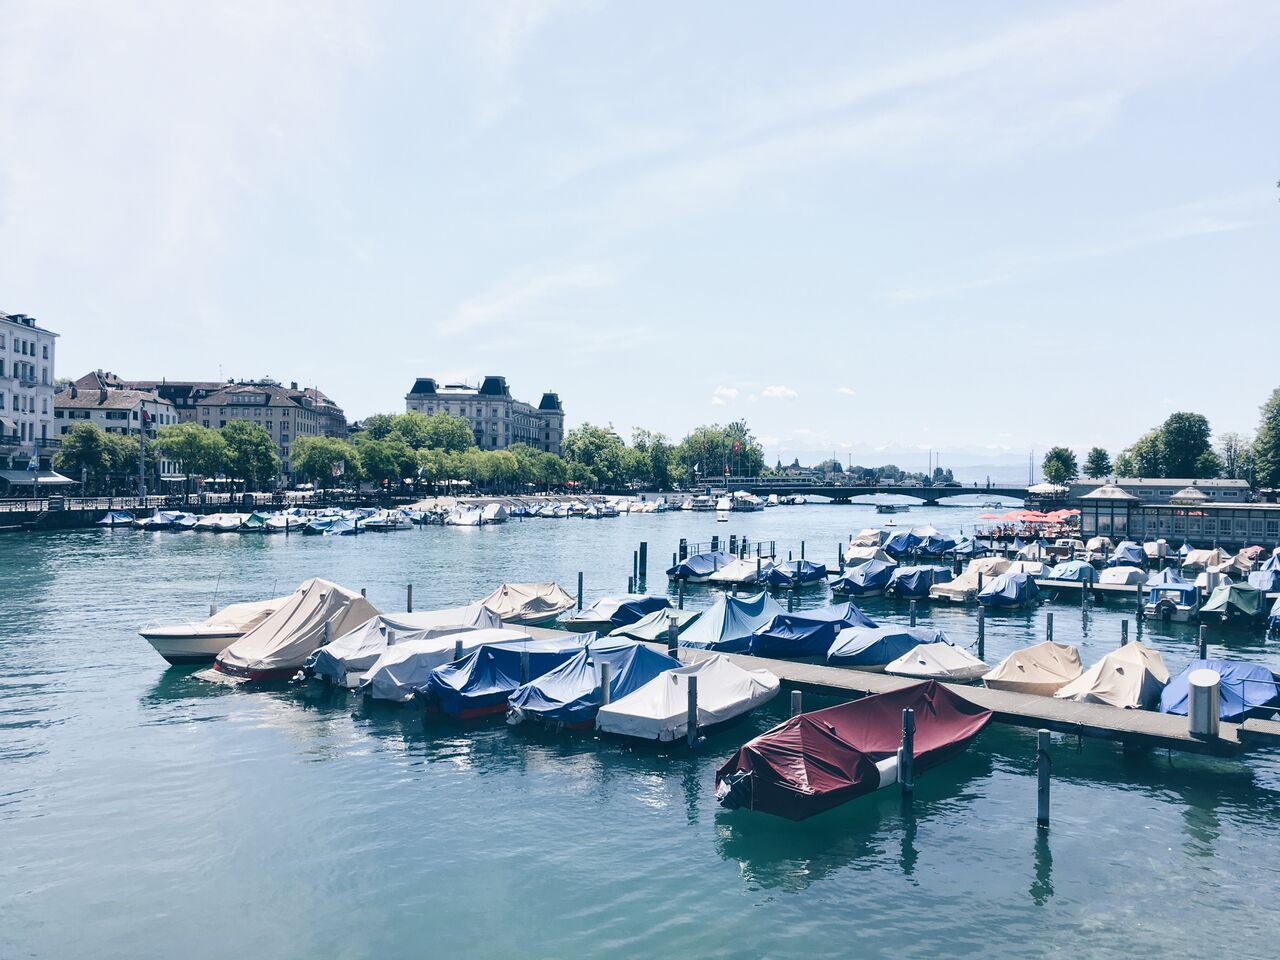 Best In Zürich – Frauenbad Stadhausquai